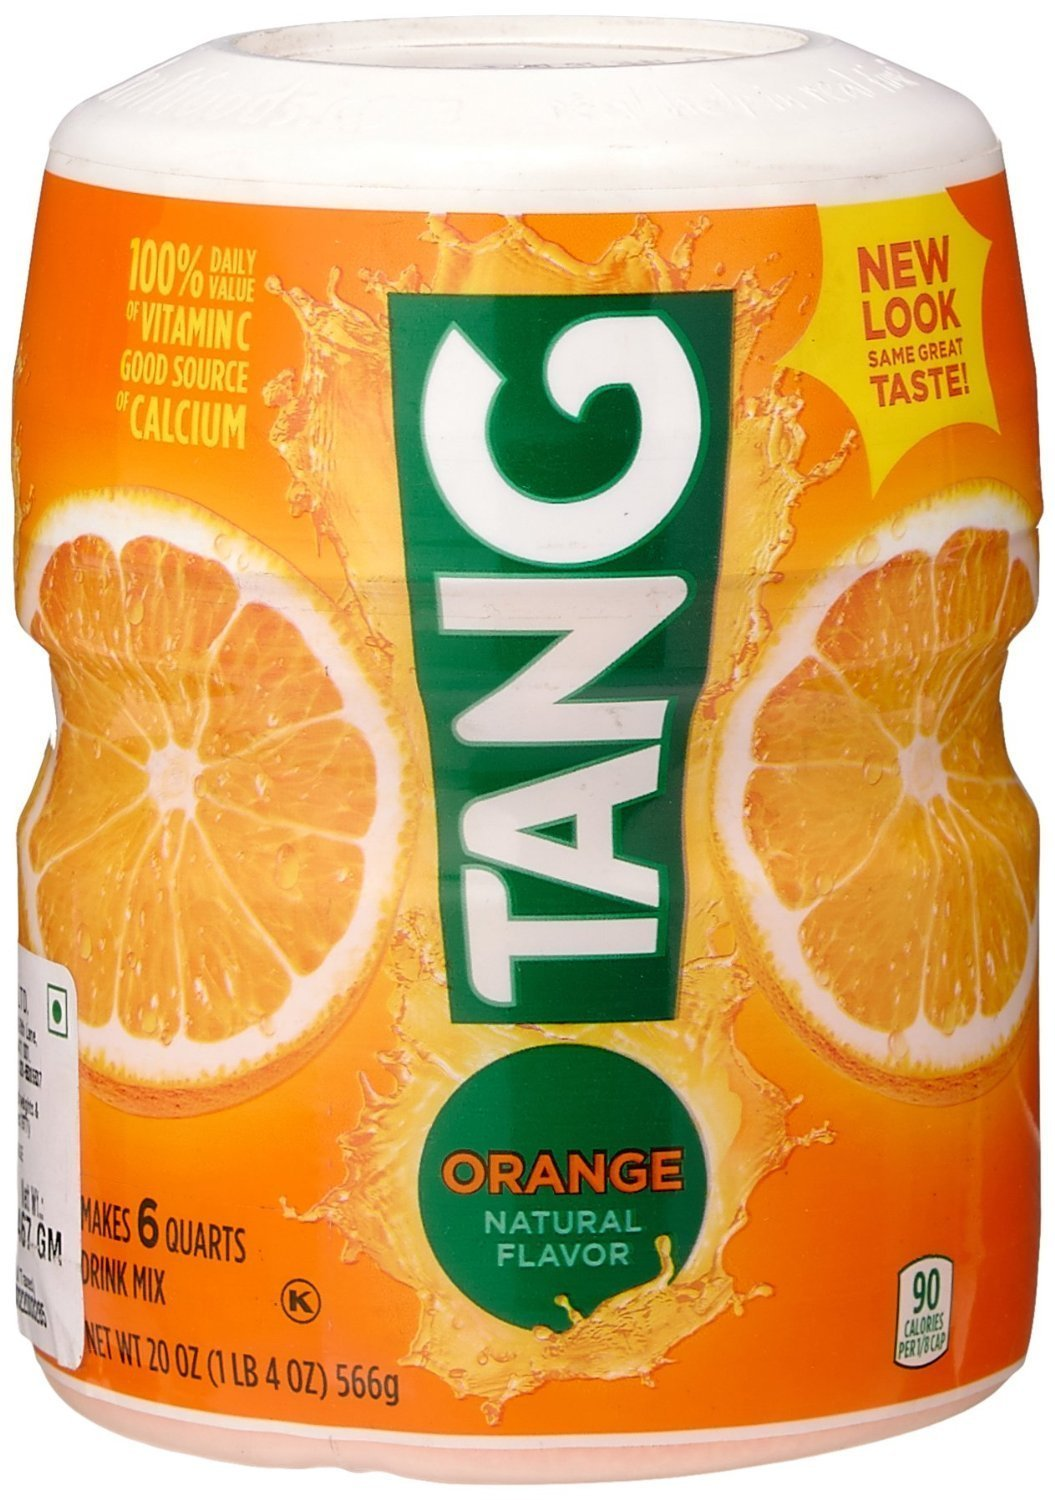 Tang Orange Powdered Drink Mix (Makes 6 Quarts), 20-ounce Canister (2-pack)